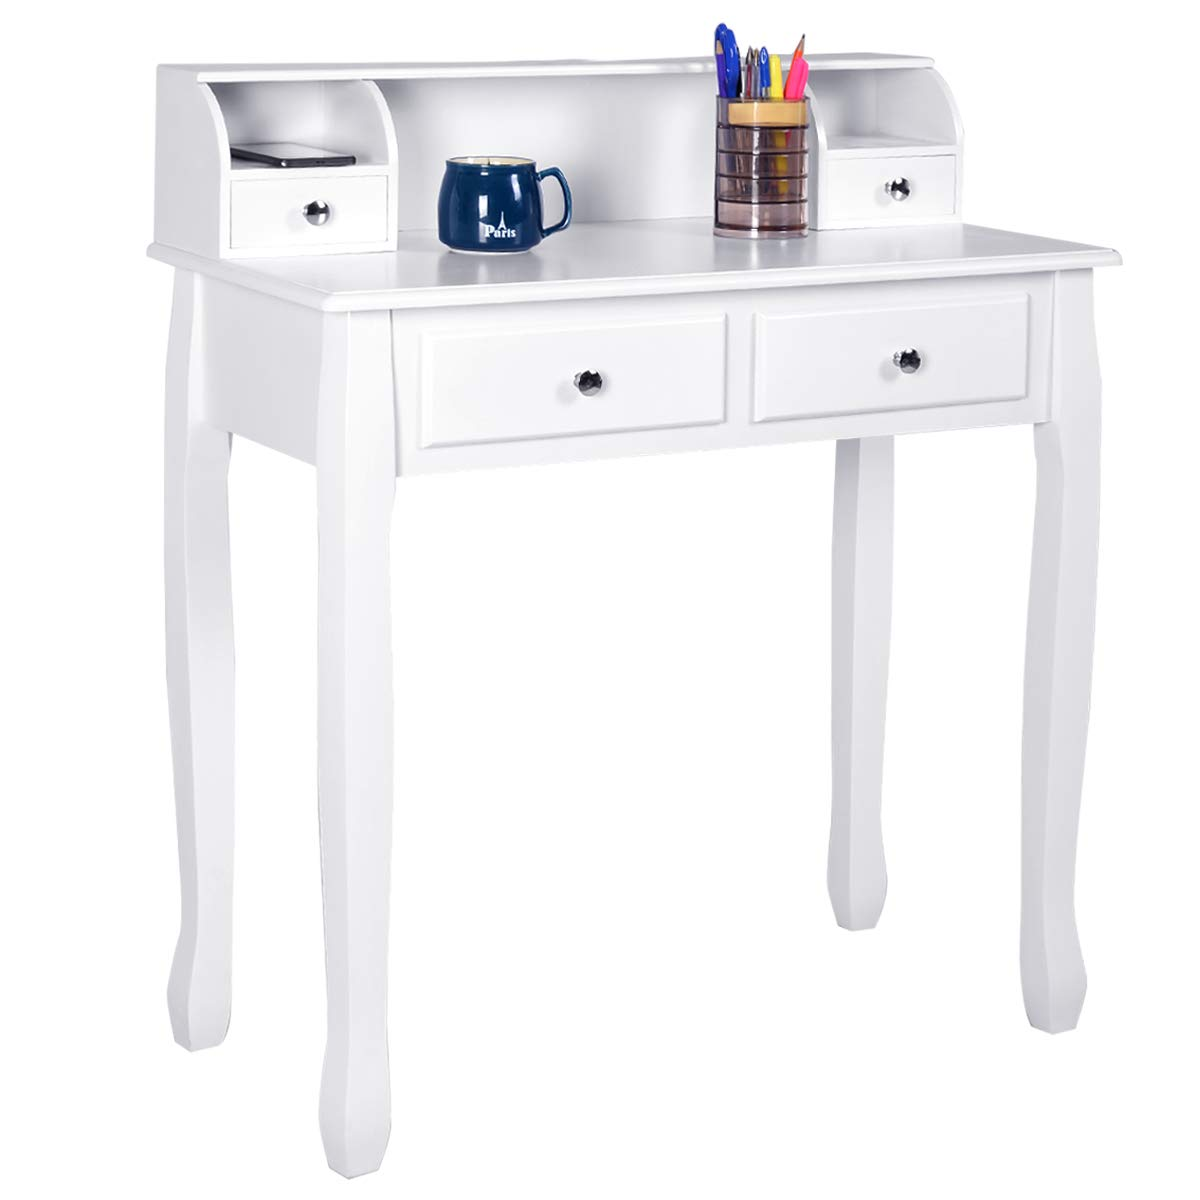 Giantex Writing Desk with 4 Drawers 2-Tier Mission Home Office Computer Desk, White by Giantex